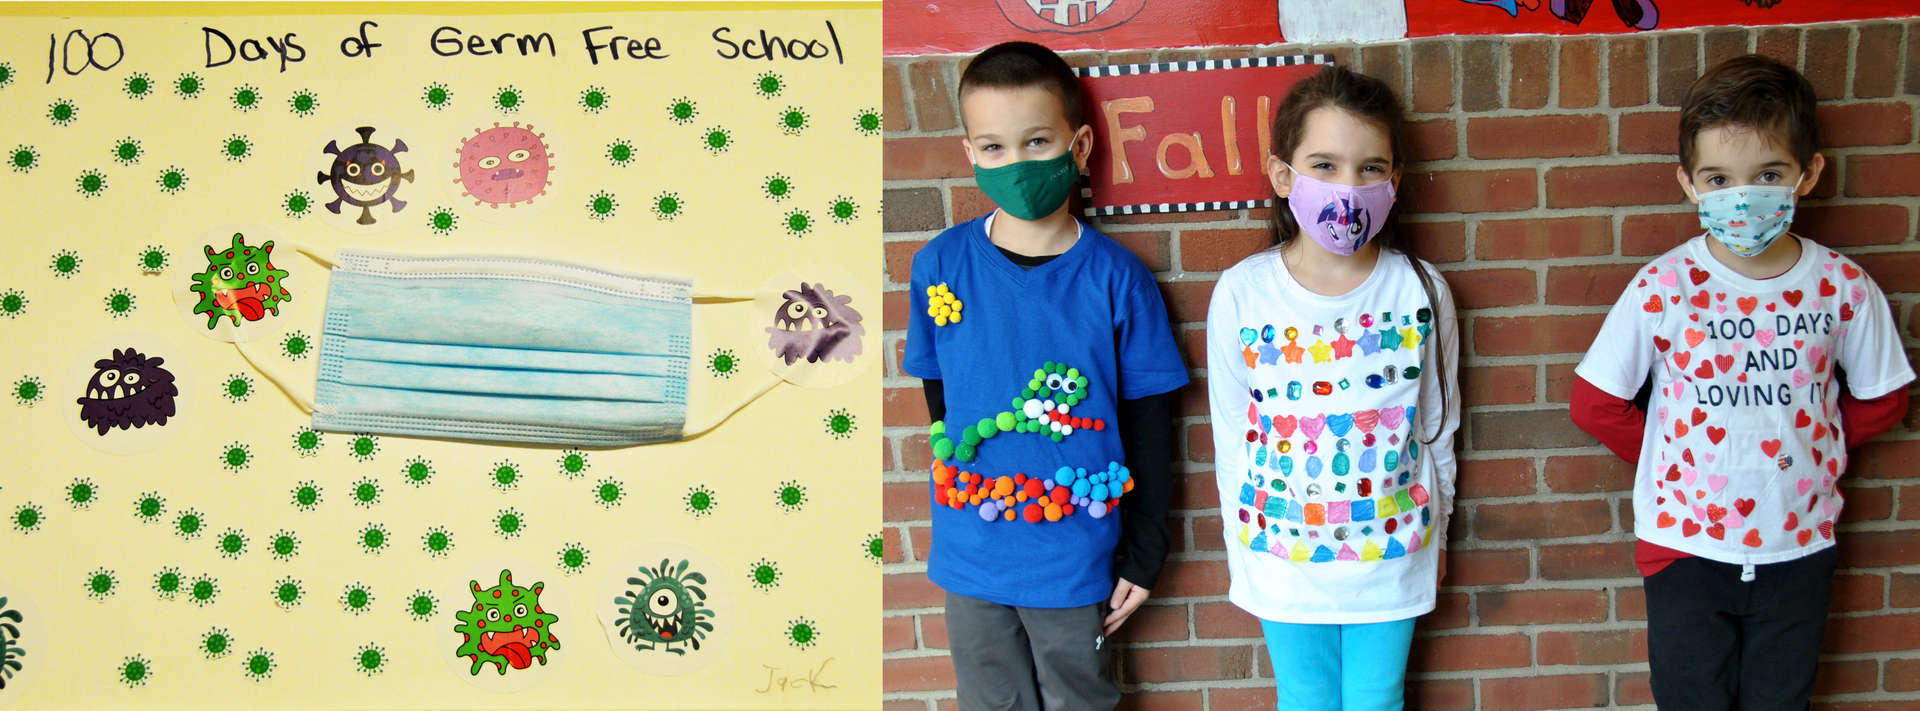 Three Children wearing t-shirts with 100 items on them.